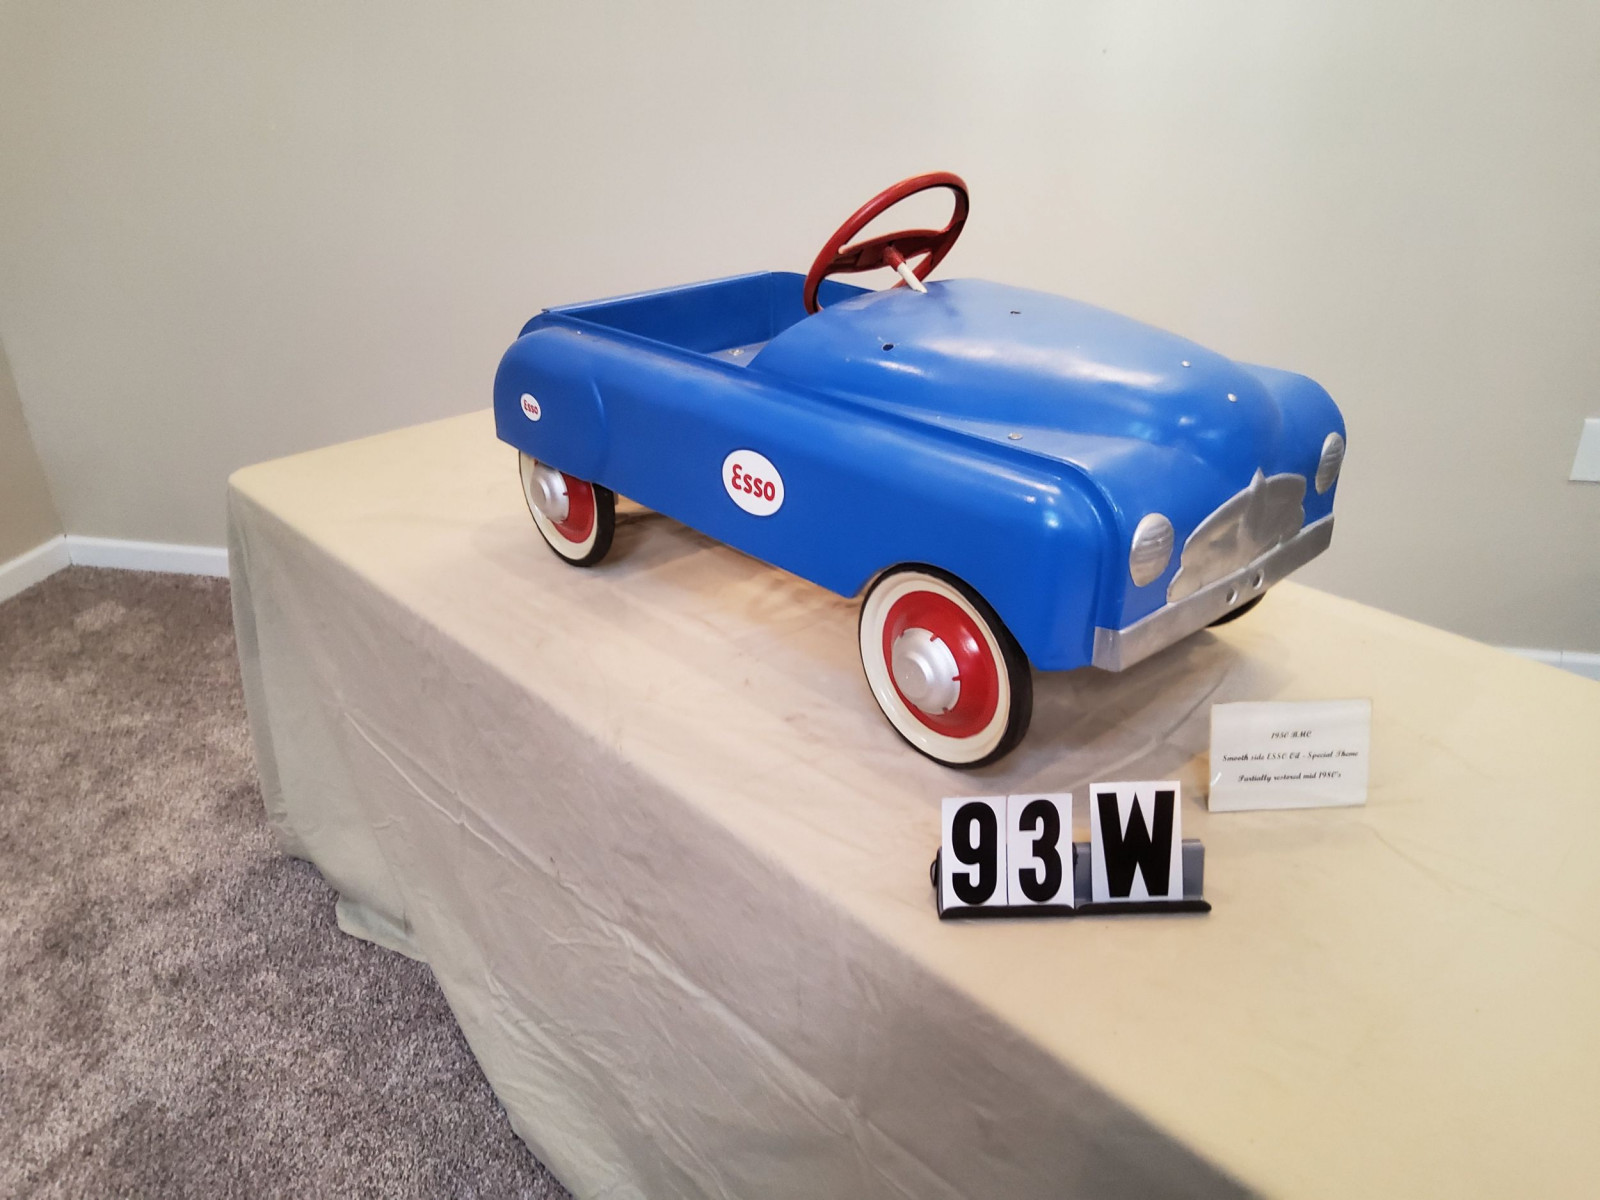 1950 BMC Smooth Side ESSO theme Pedal Car - Image 2